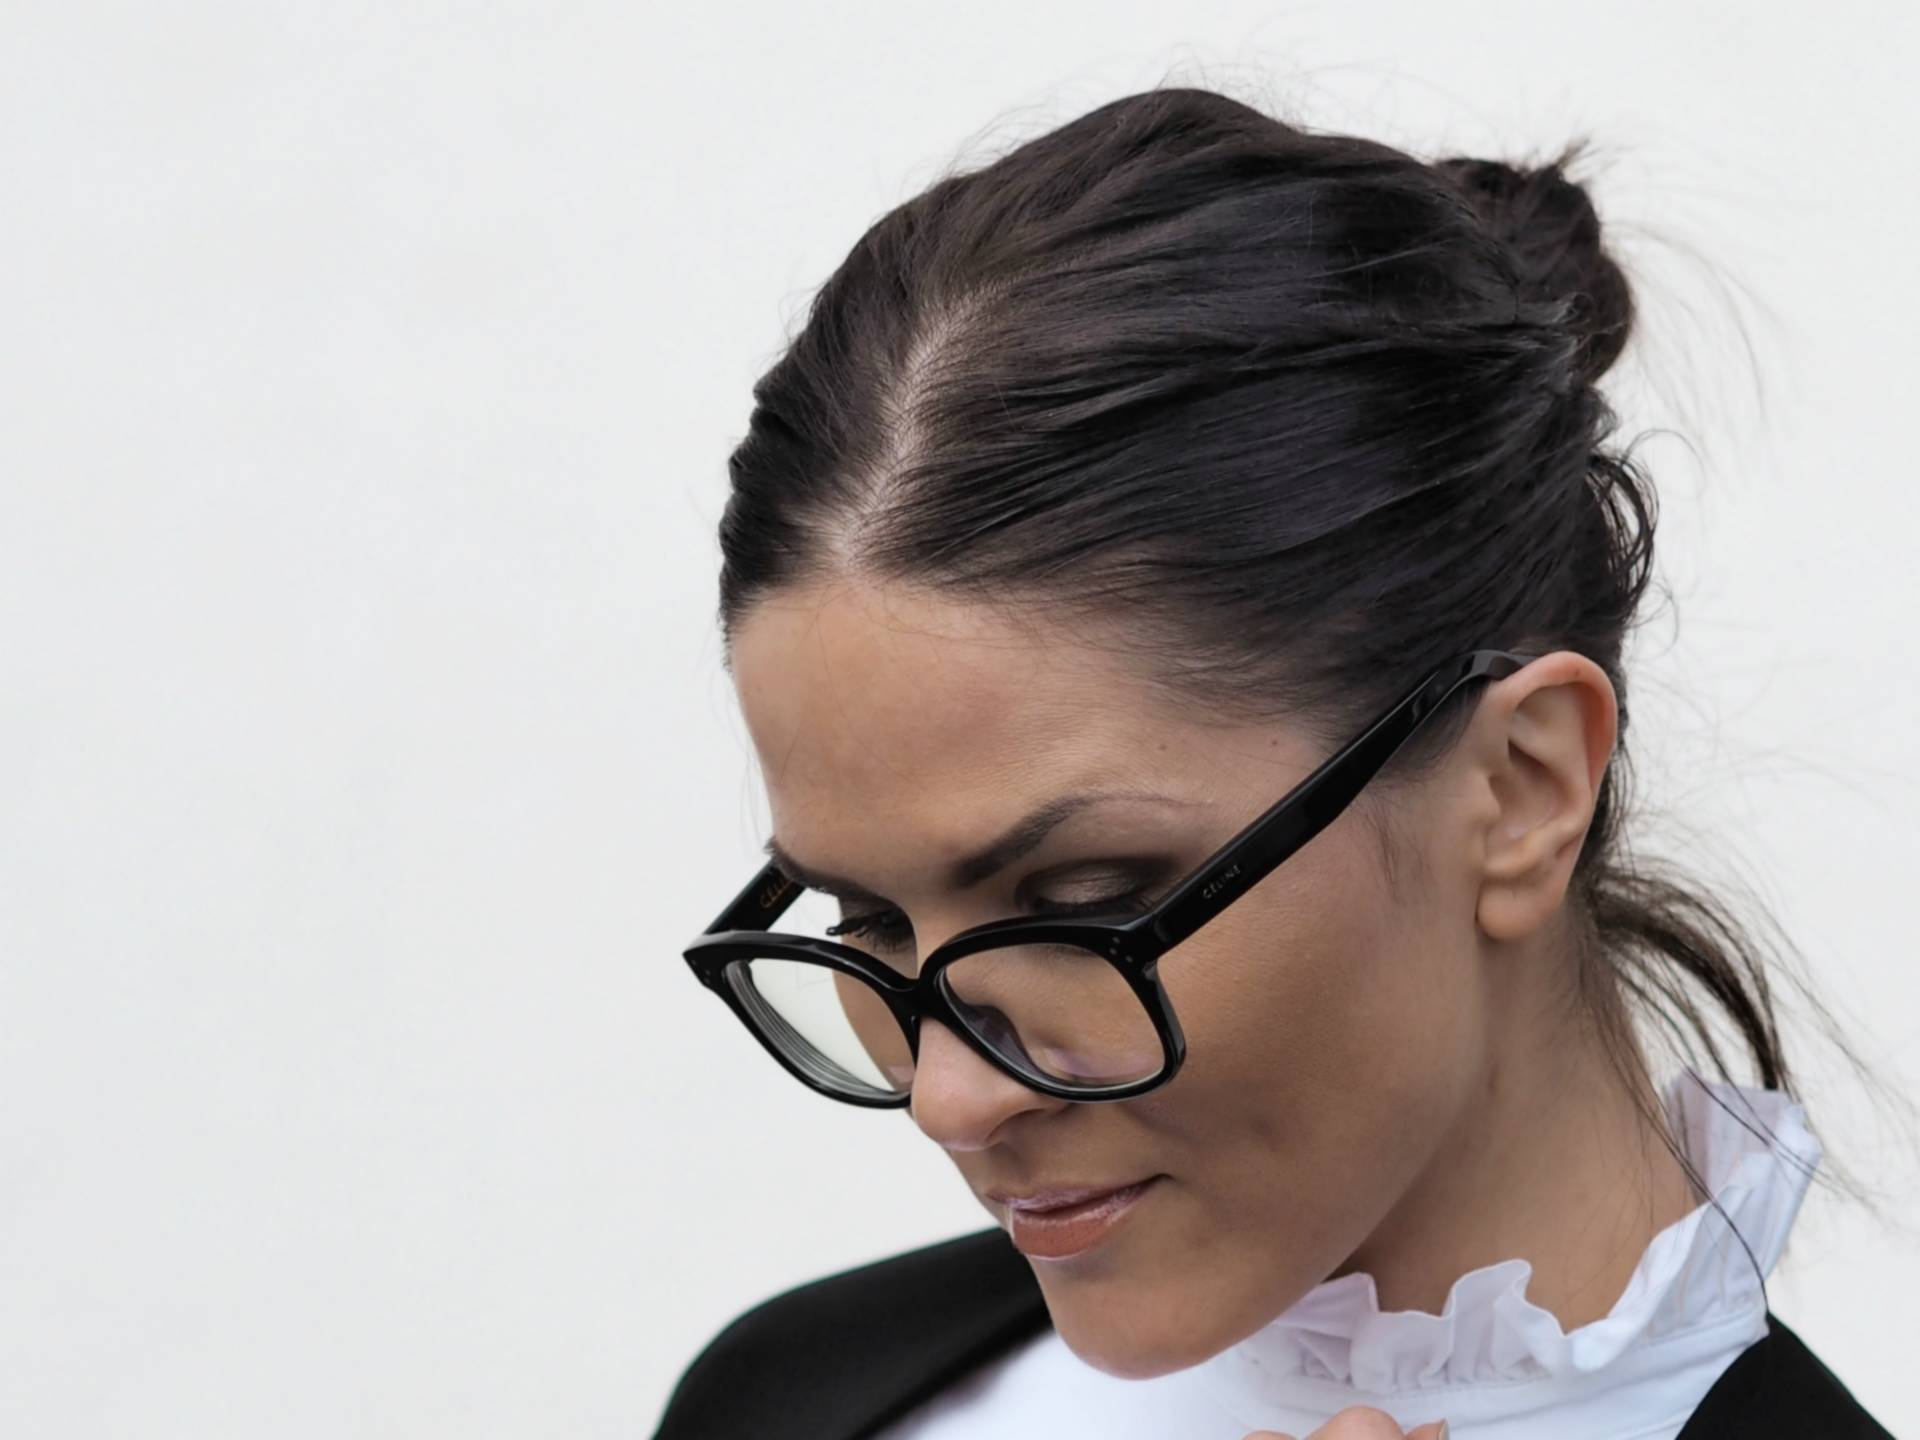 0383673cde5 ... ARCHIVE BY ALEXA HARRY BLOUSE AND CELINE GLASSES - LAFOTKA FASHION  BLOGGER ...